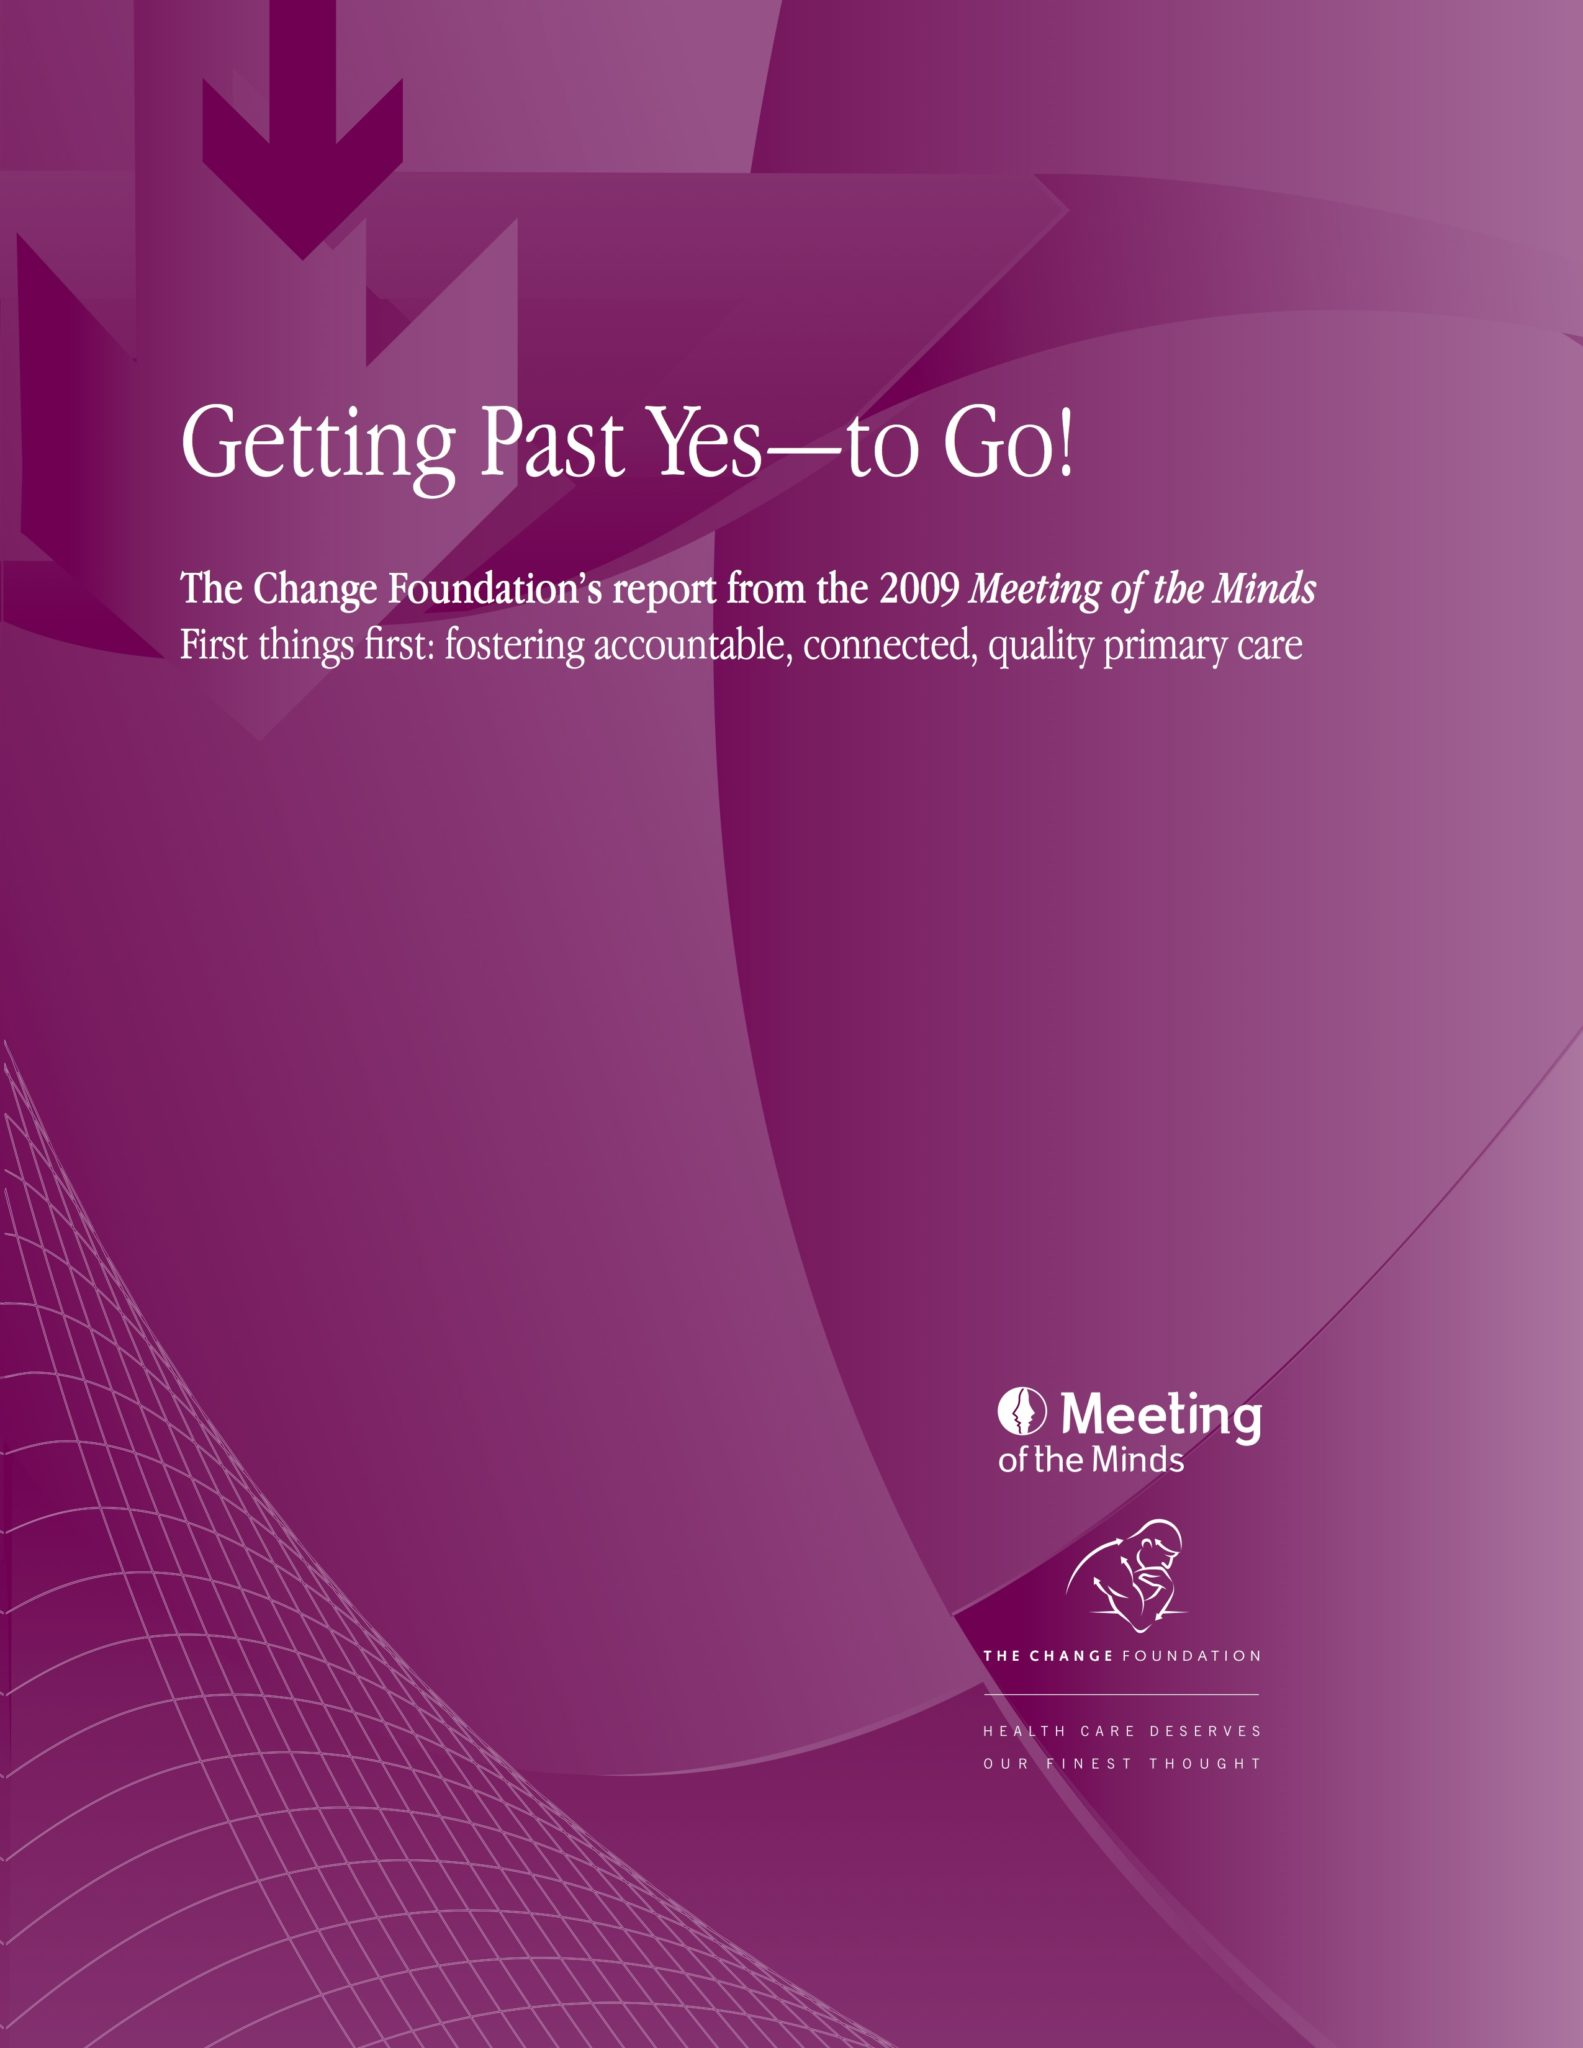 Getting Past Yes—to Go